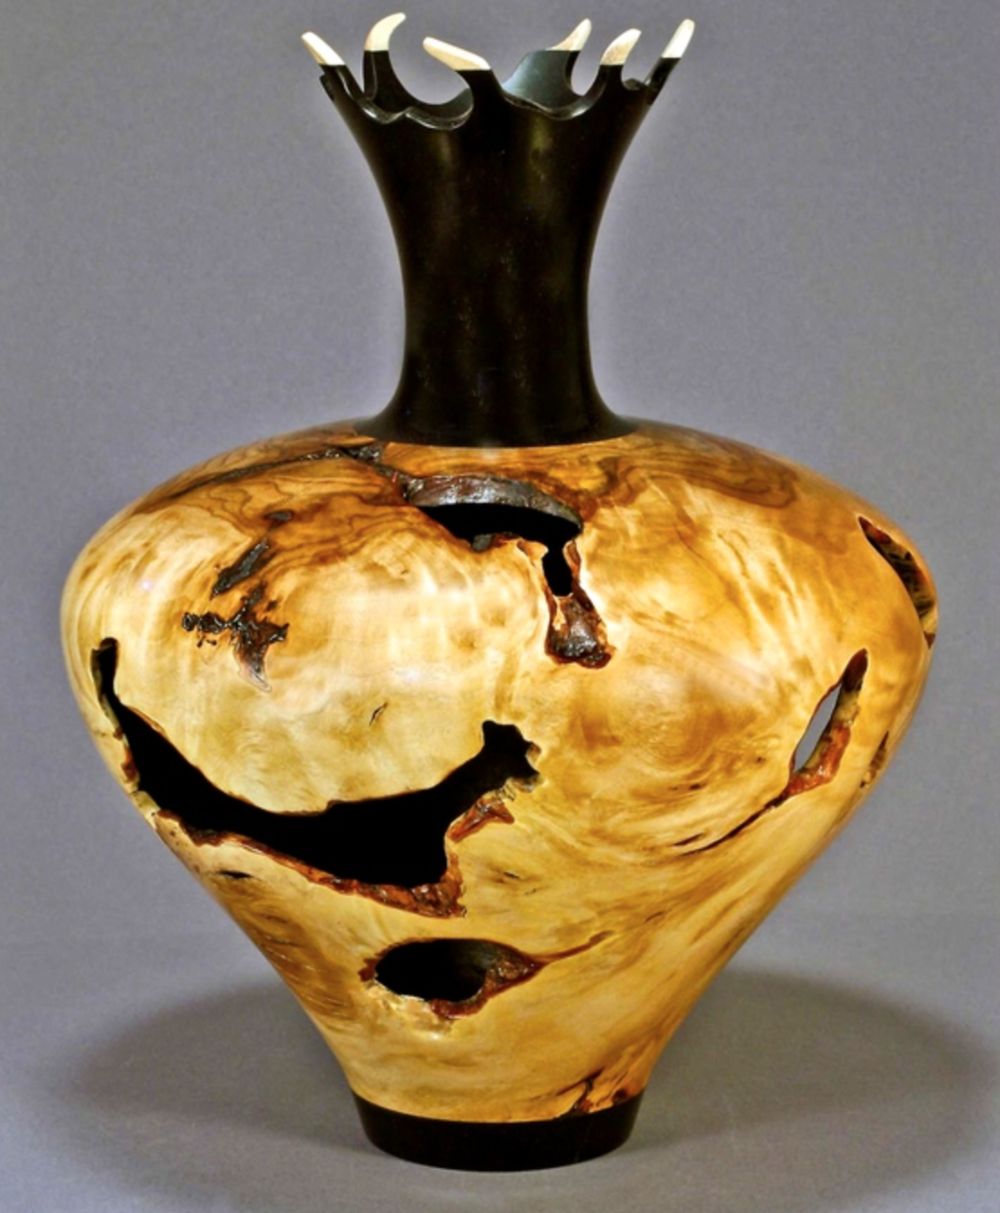 David Rec - Lathe turned bowls, vases, lamps and Platters. Crushed stone and copper inlays.